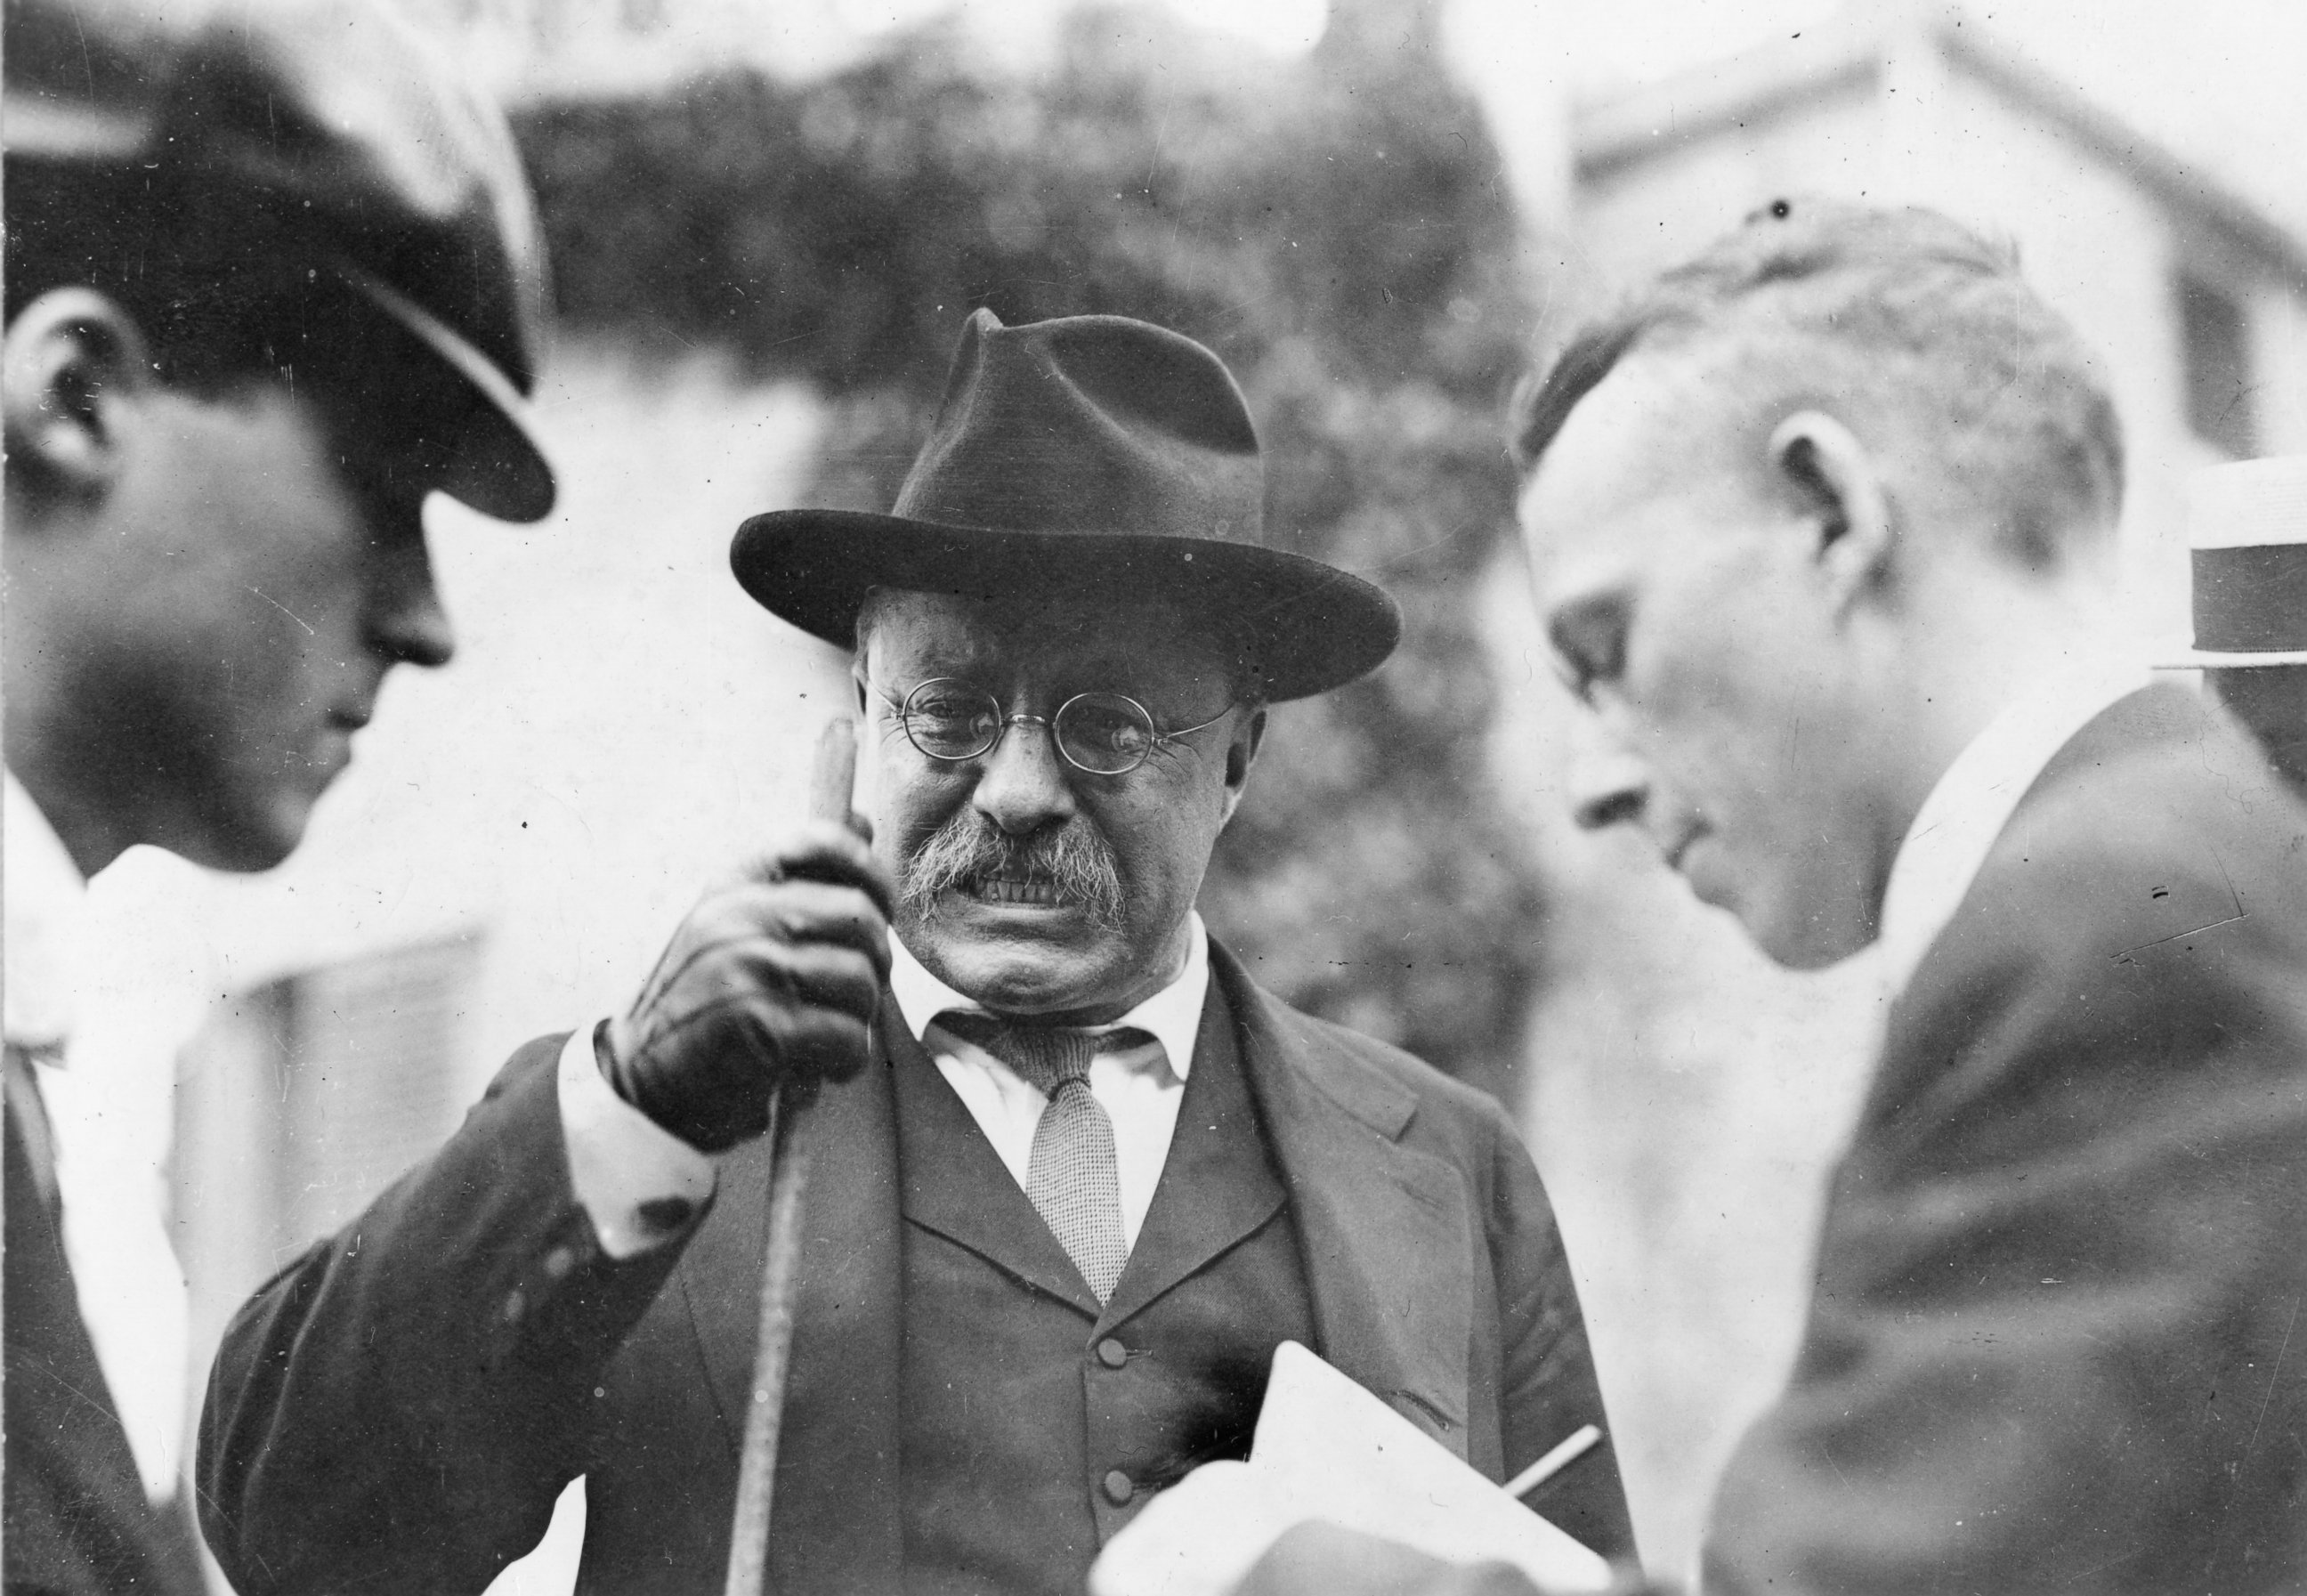 a history of progressive president theodore roosevelt Theodore roosevelt, 26th president of the united states (1901–1909), was the youngest and arguably most energetic man ever to fill that office.